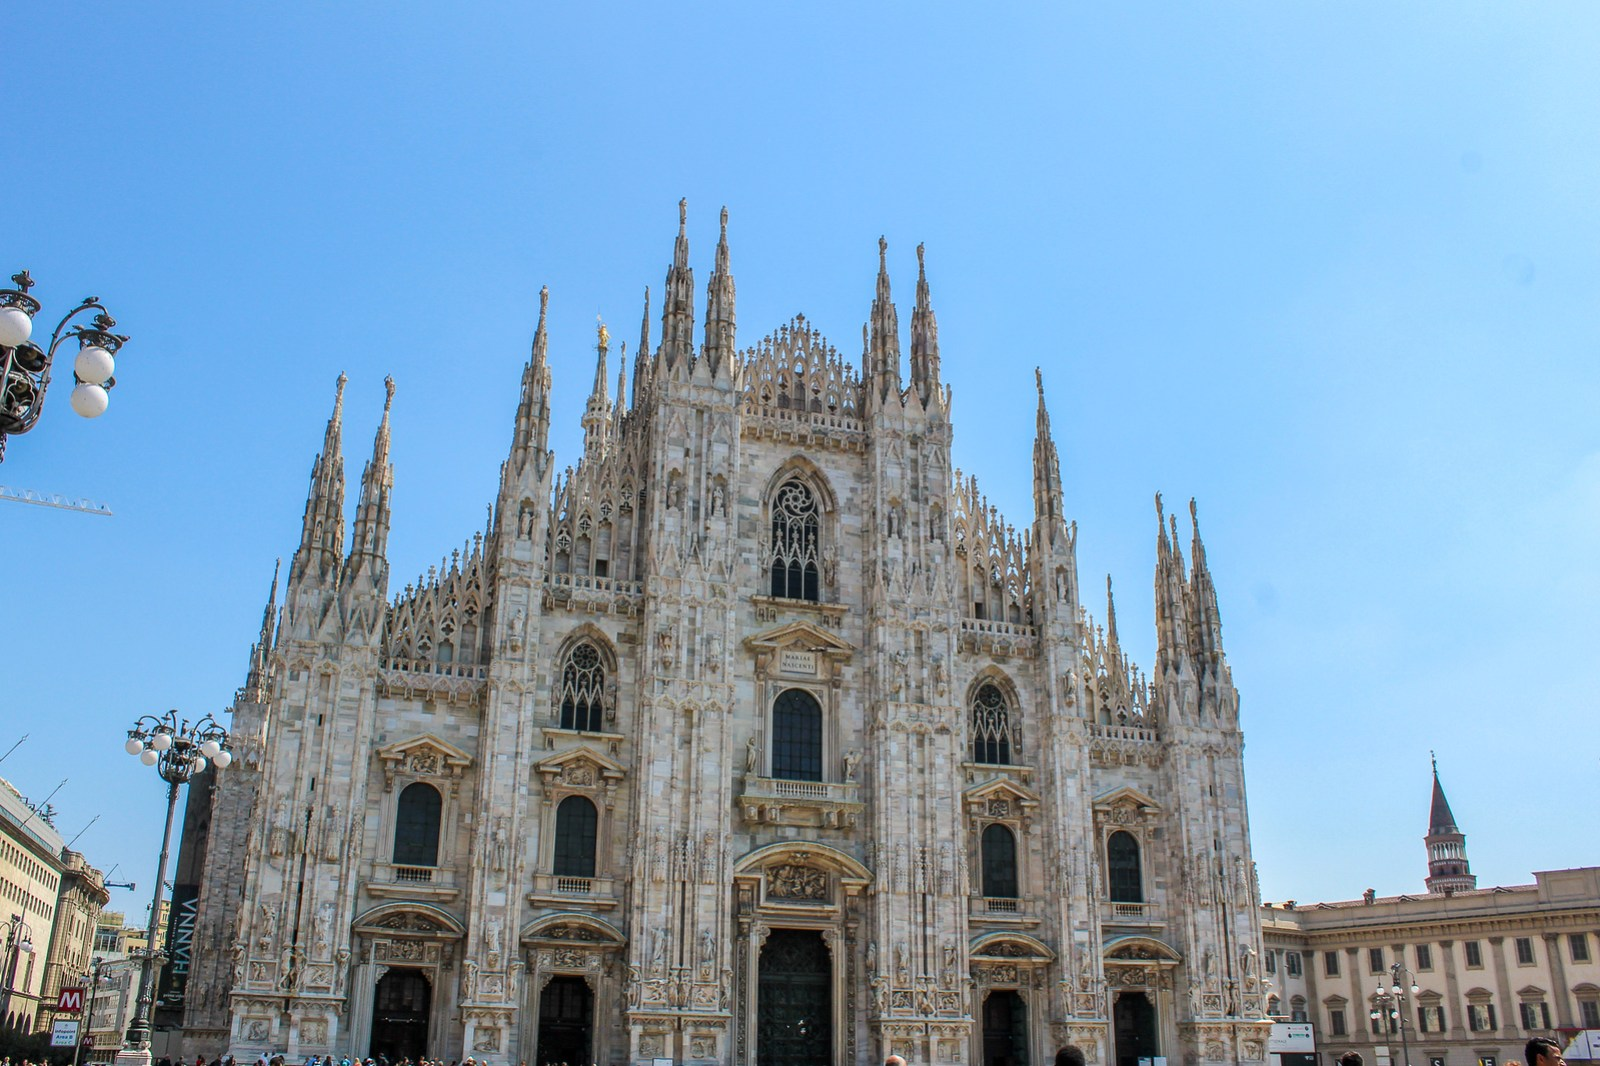 what is milan like? gorgeous. just look at the duomo.